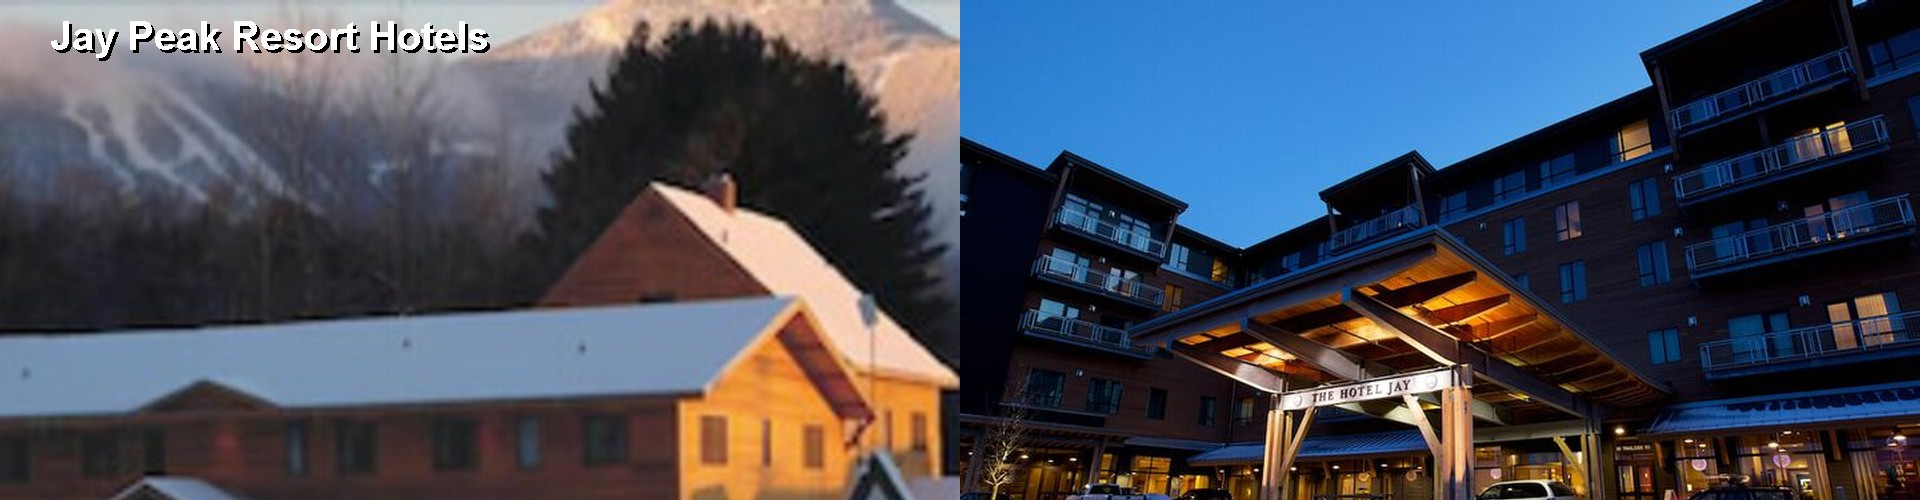 5 Best Hotels near Jay Peak Resort